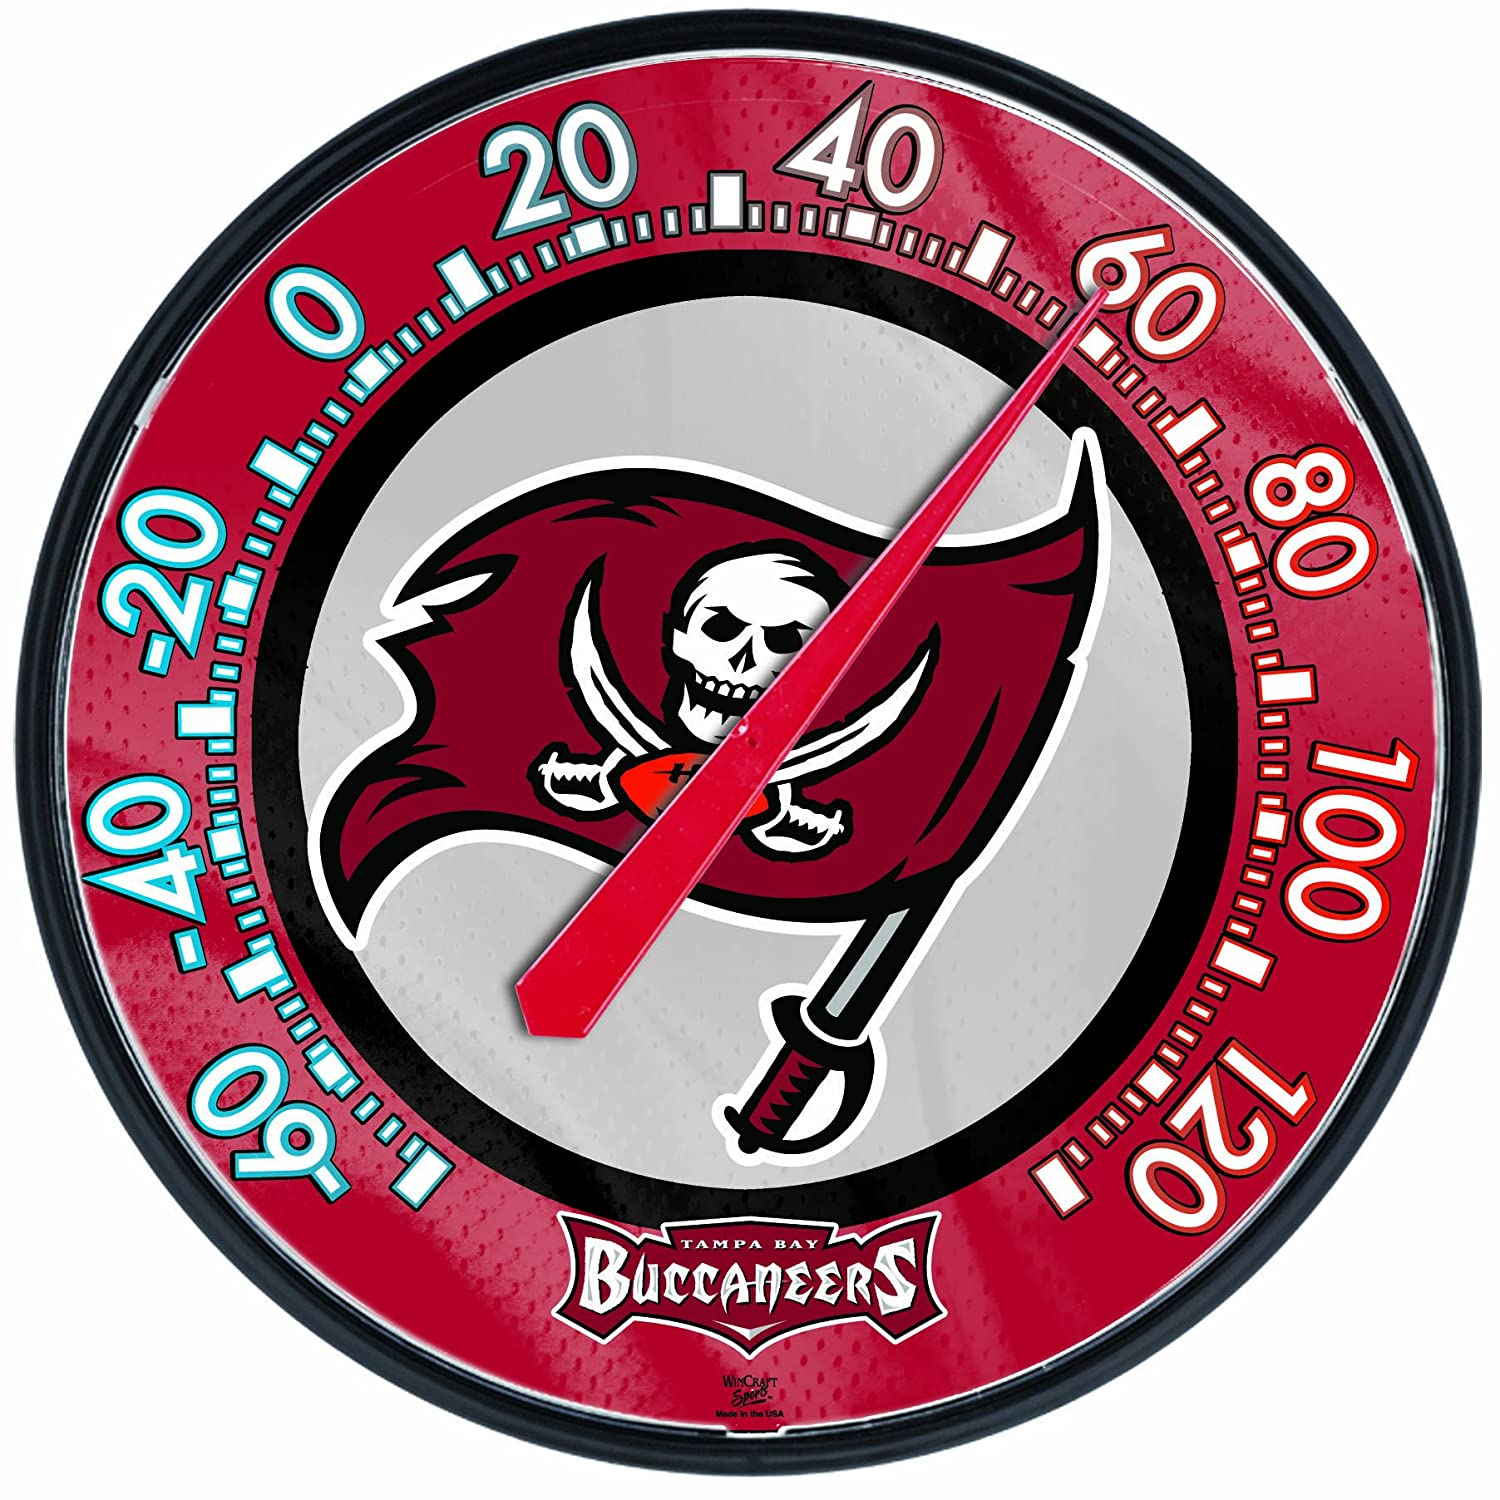 NFL Thermometer NFL Team  Tampa Bay Buccaneers  Amazon.in  Home   Kitchen 9069c7180cc